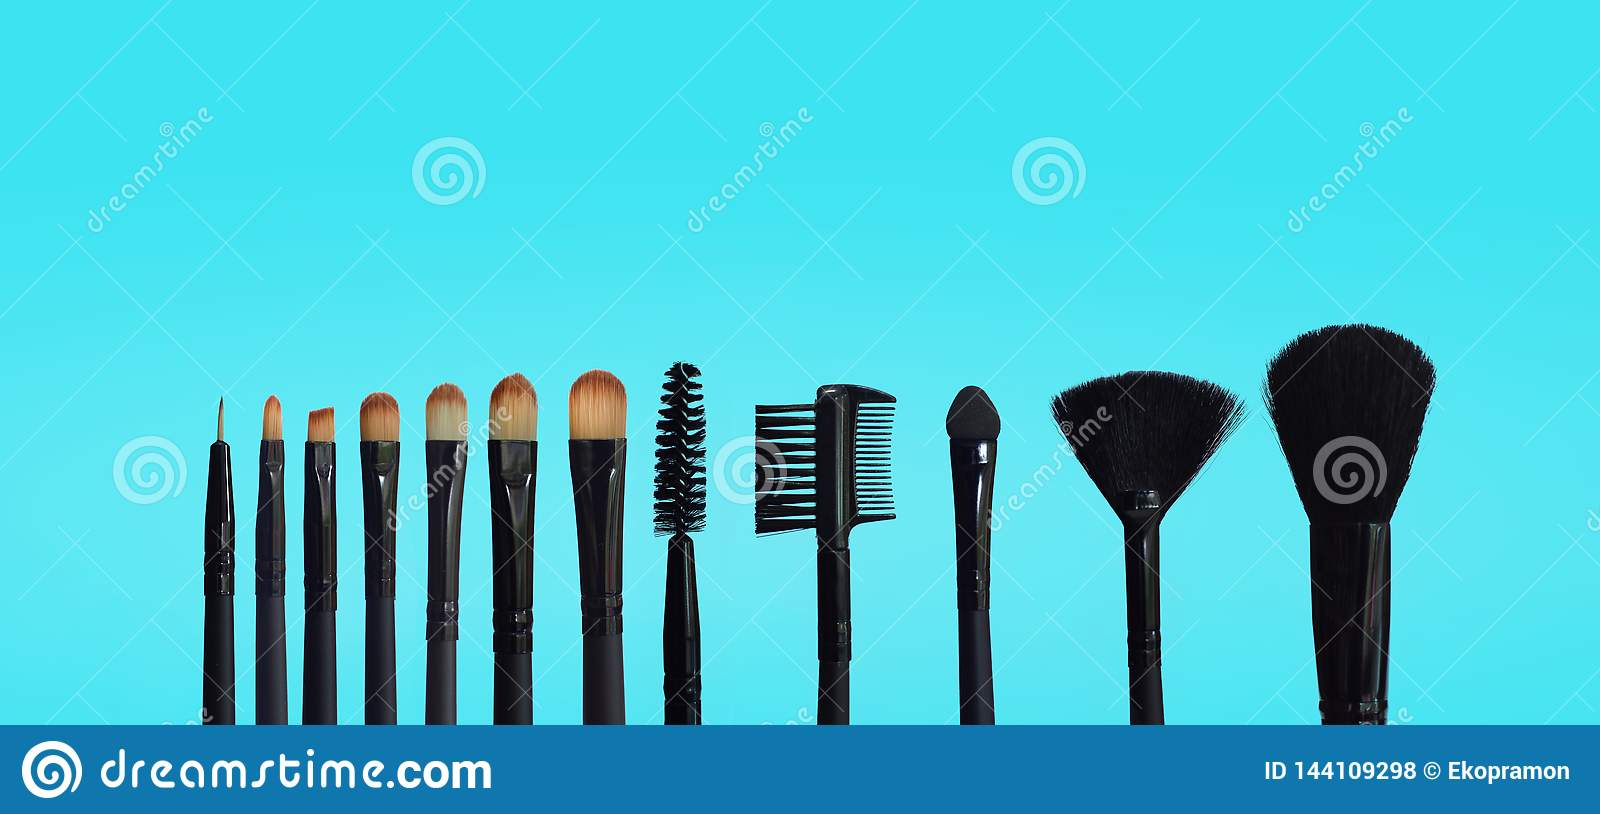 Set of makeup brushes on colored composed background